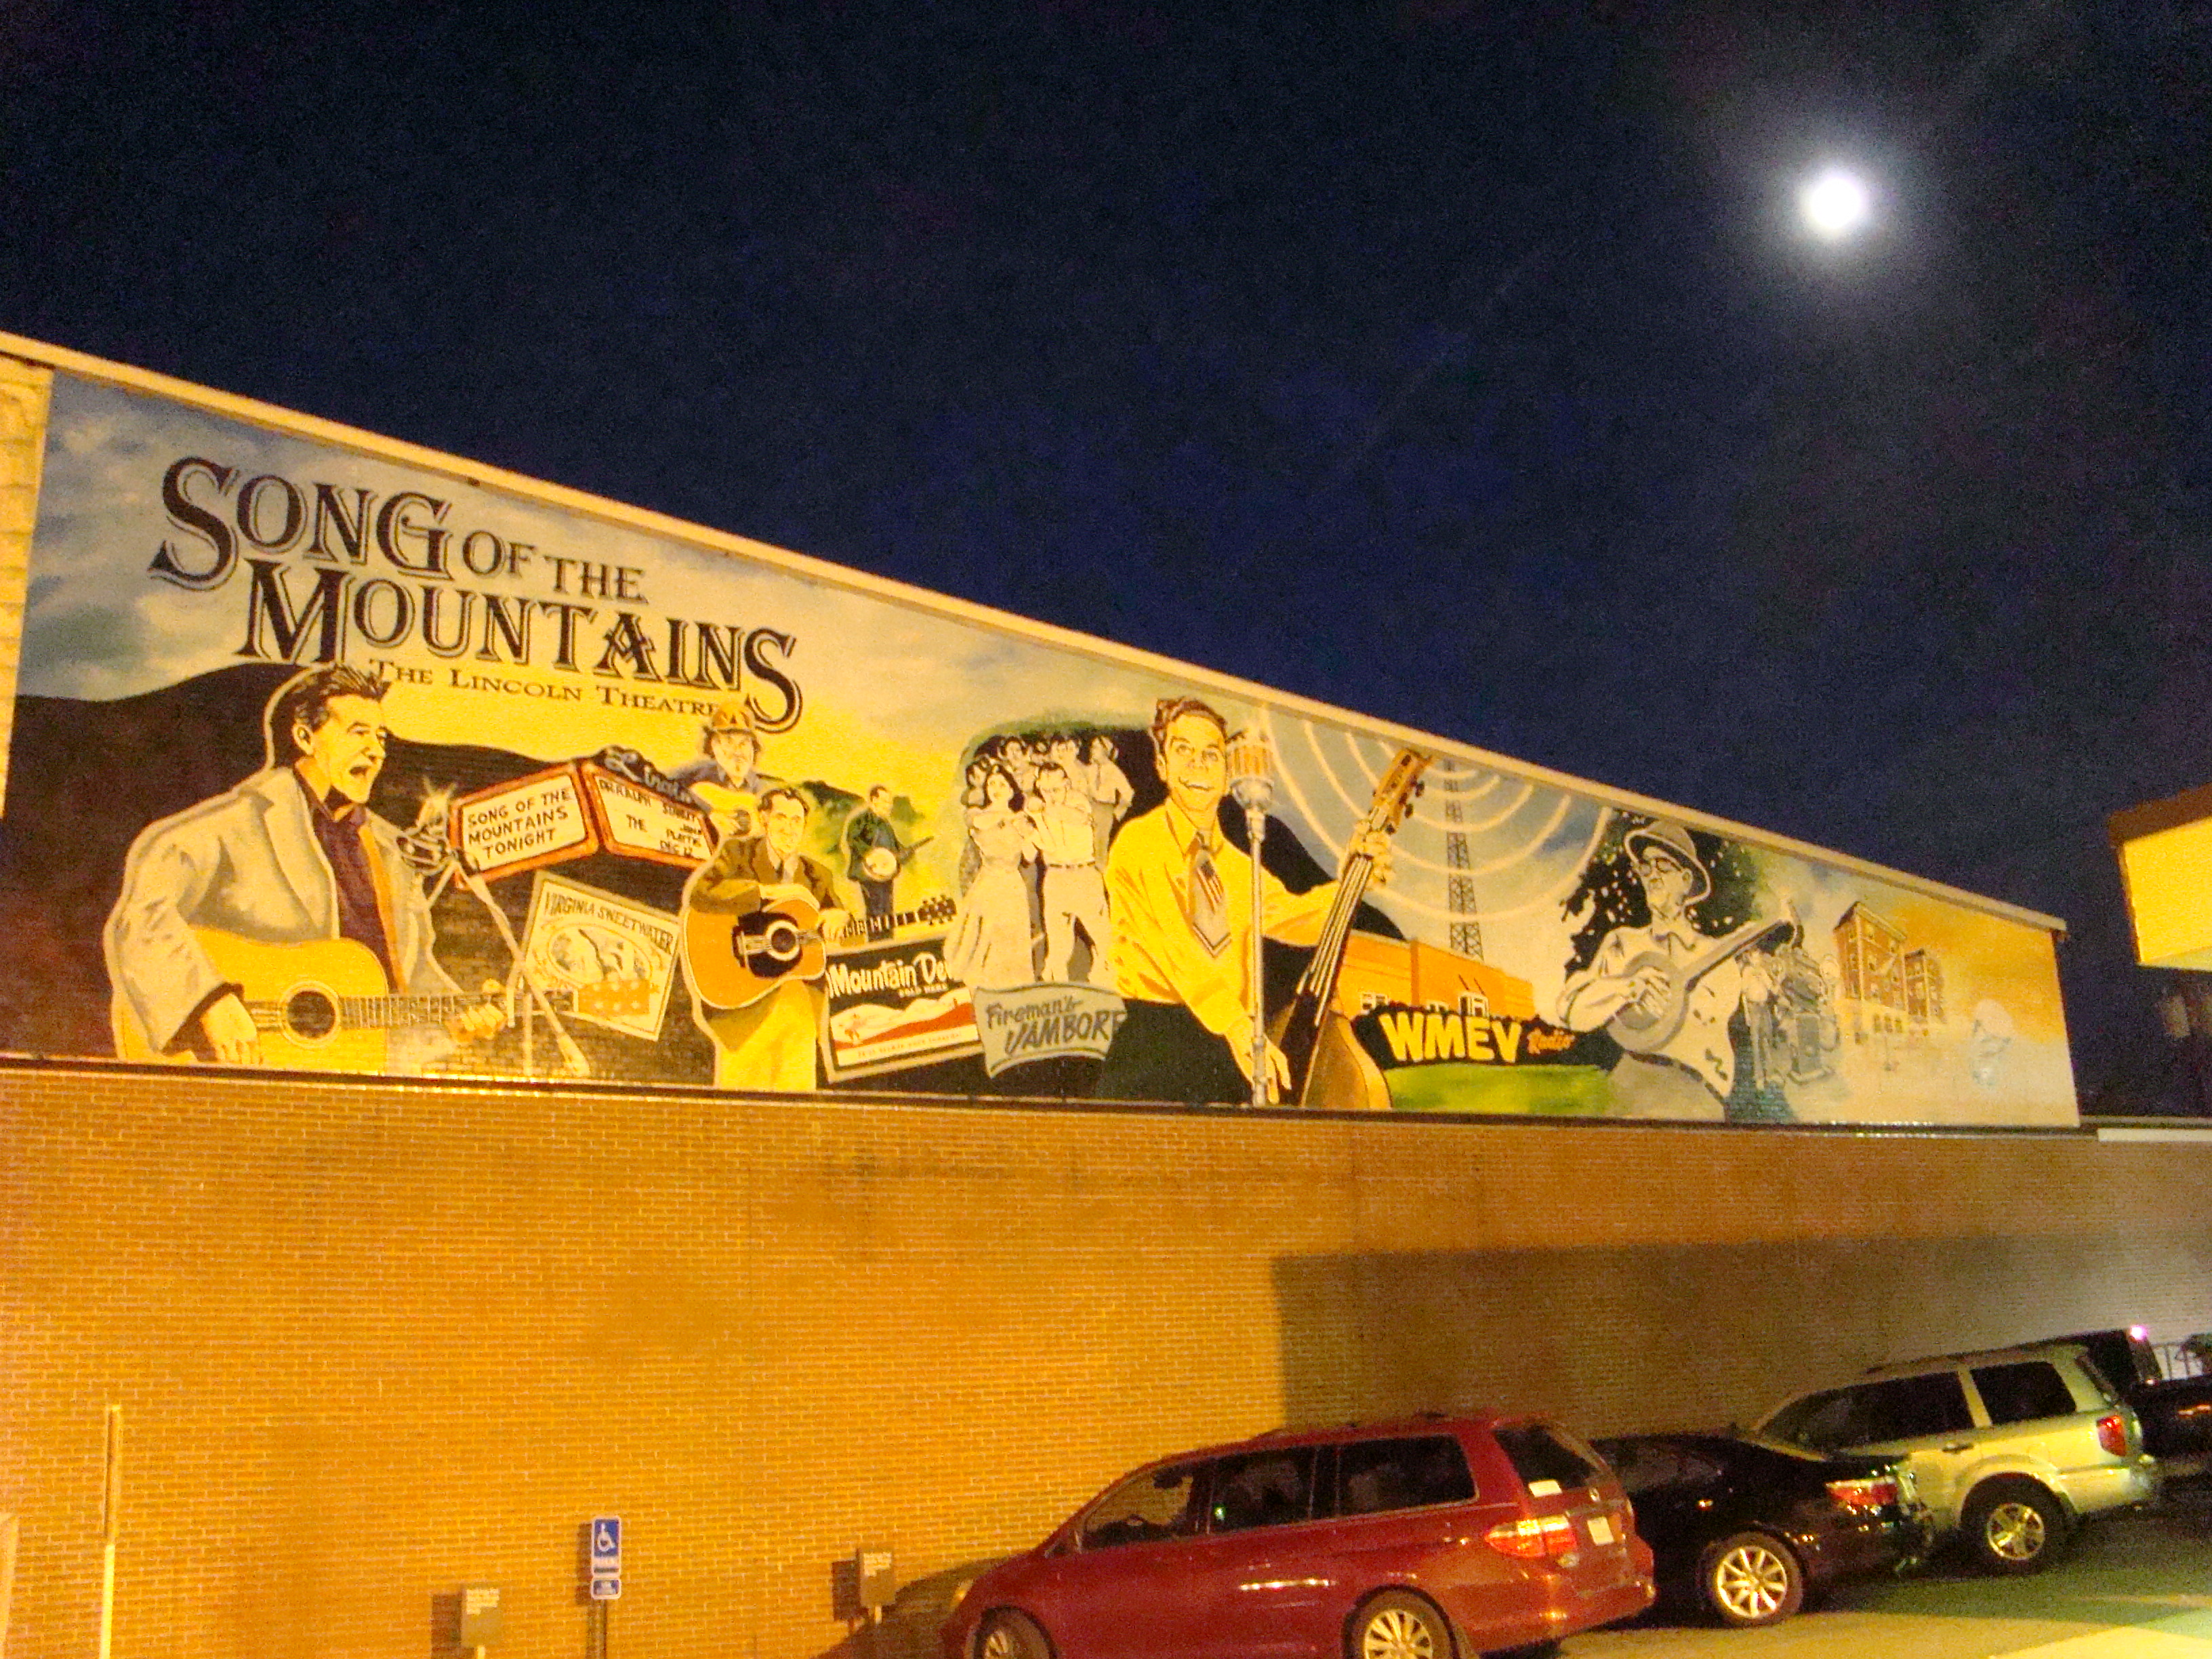 Marion, VA Mural @ night